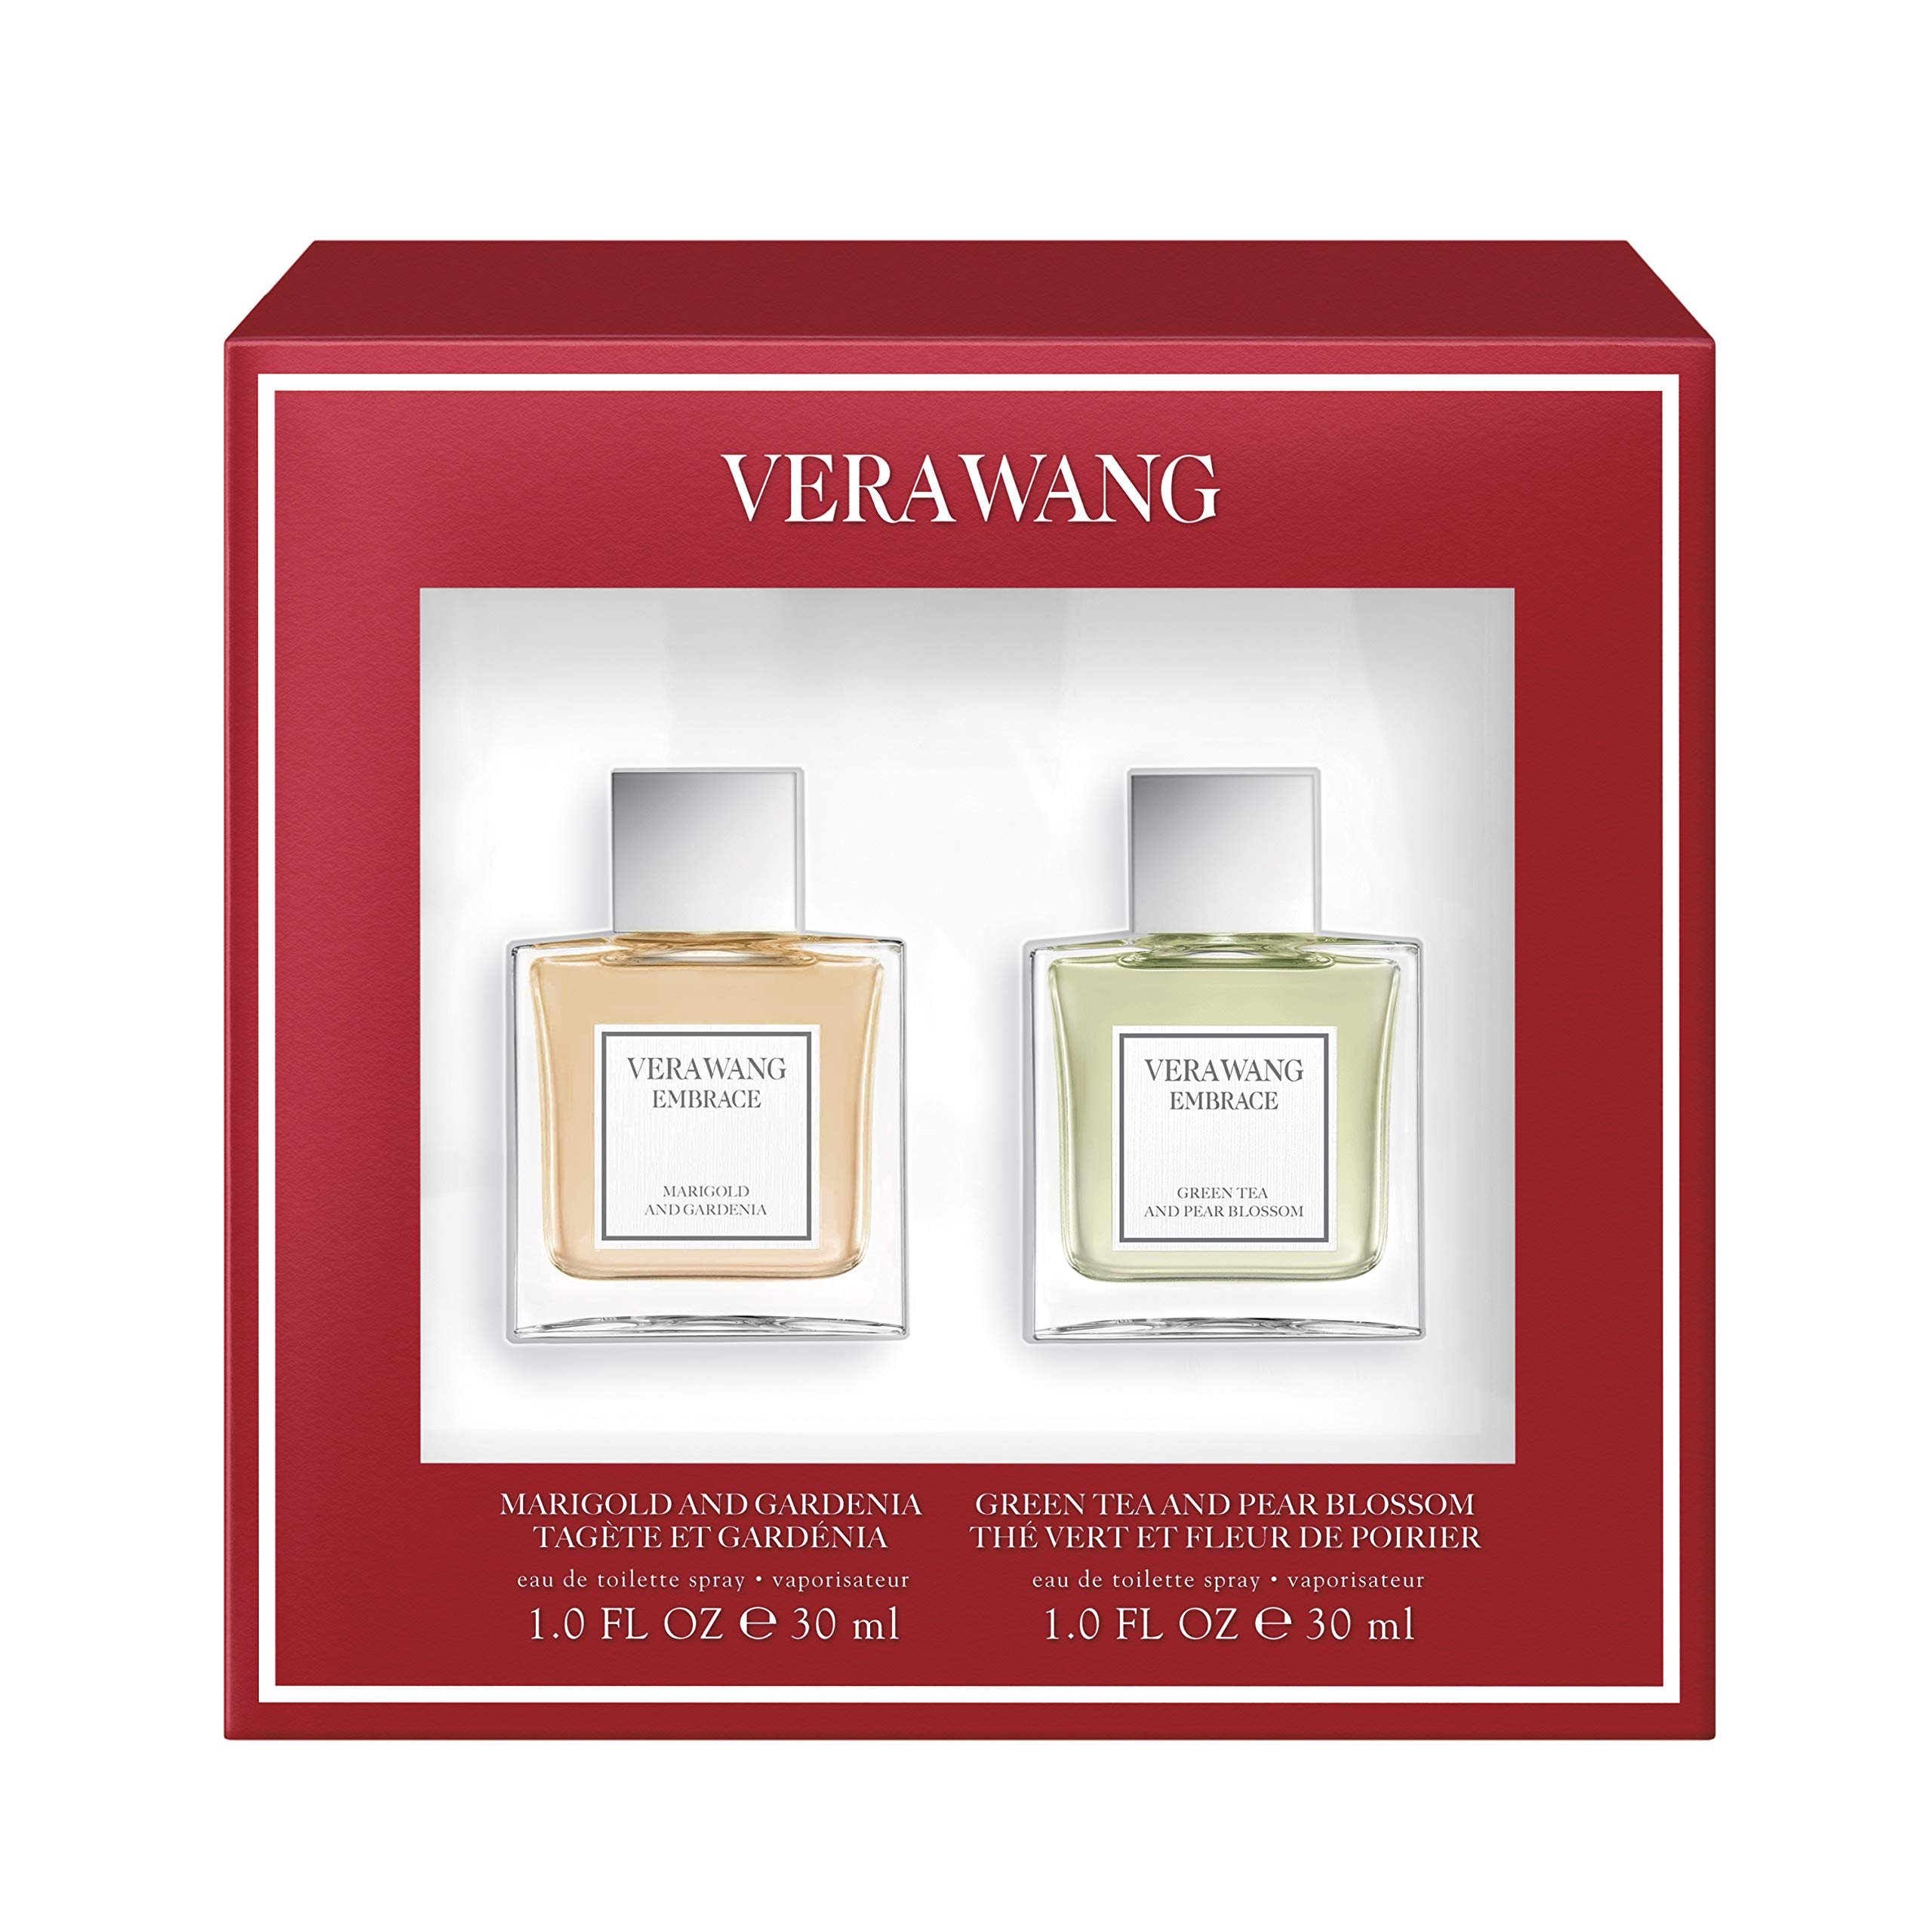 Vera Wang Vera Wang Embrace Eau De Toilette, Marigold And Gardenia/Green Tea And Blossom, 1 Ounce, Pack Of 2, 1.047196 Pounds by Vera Wang